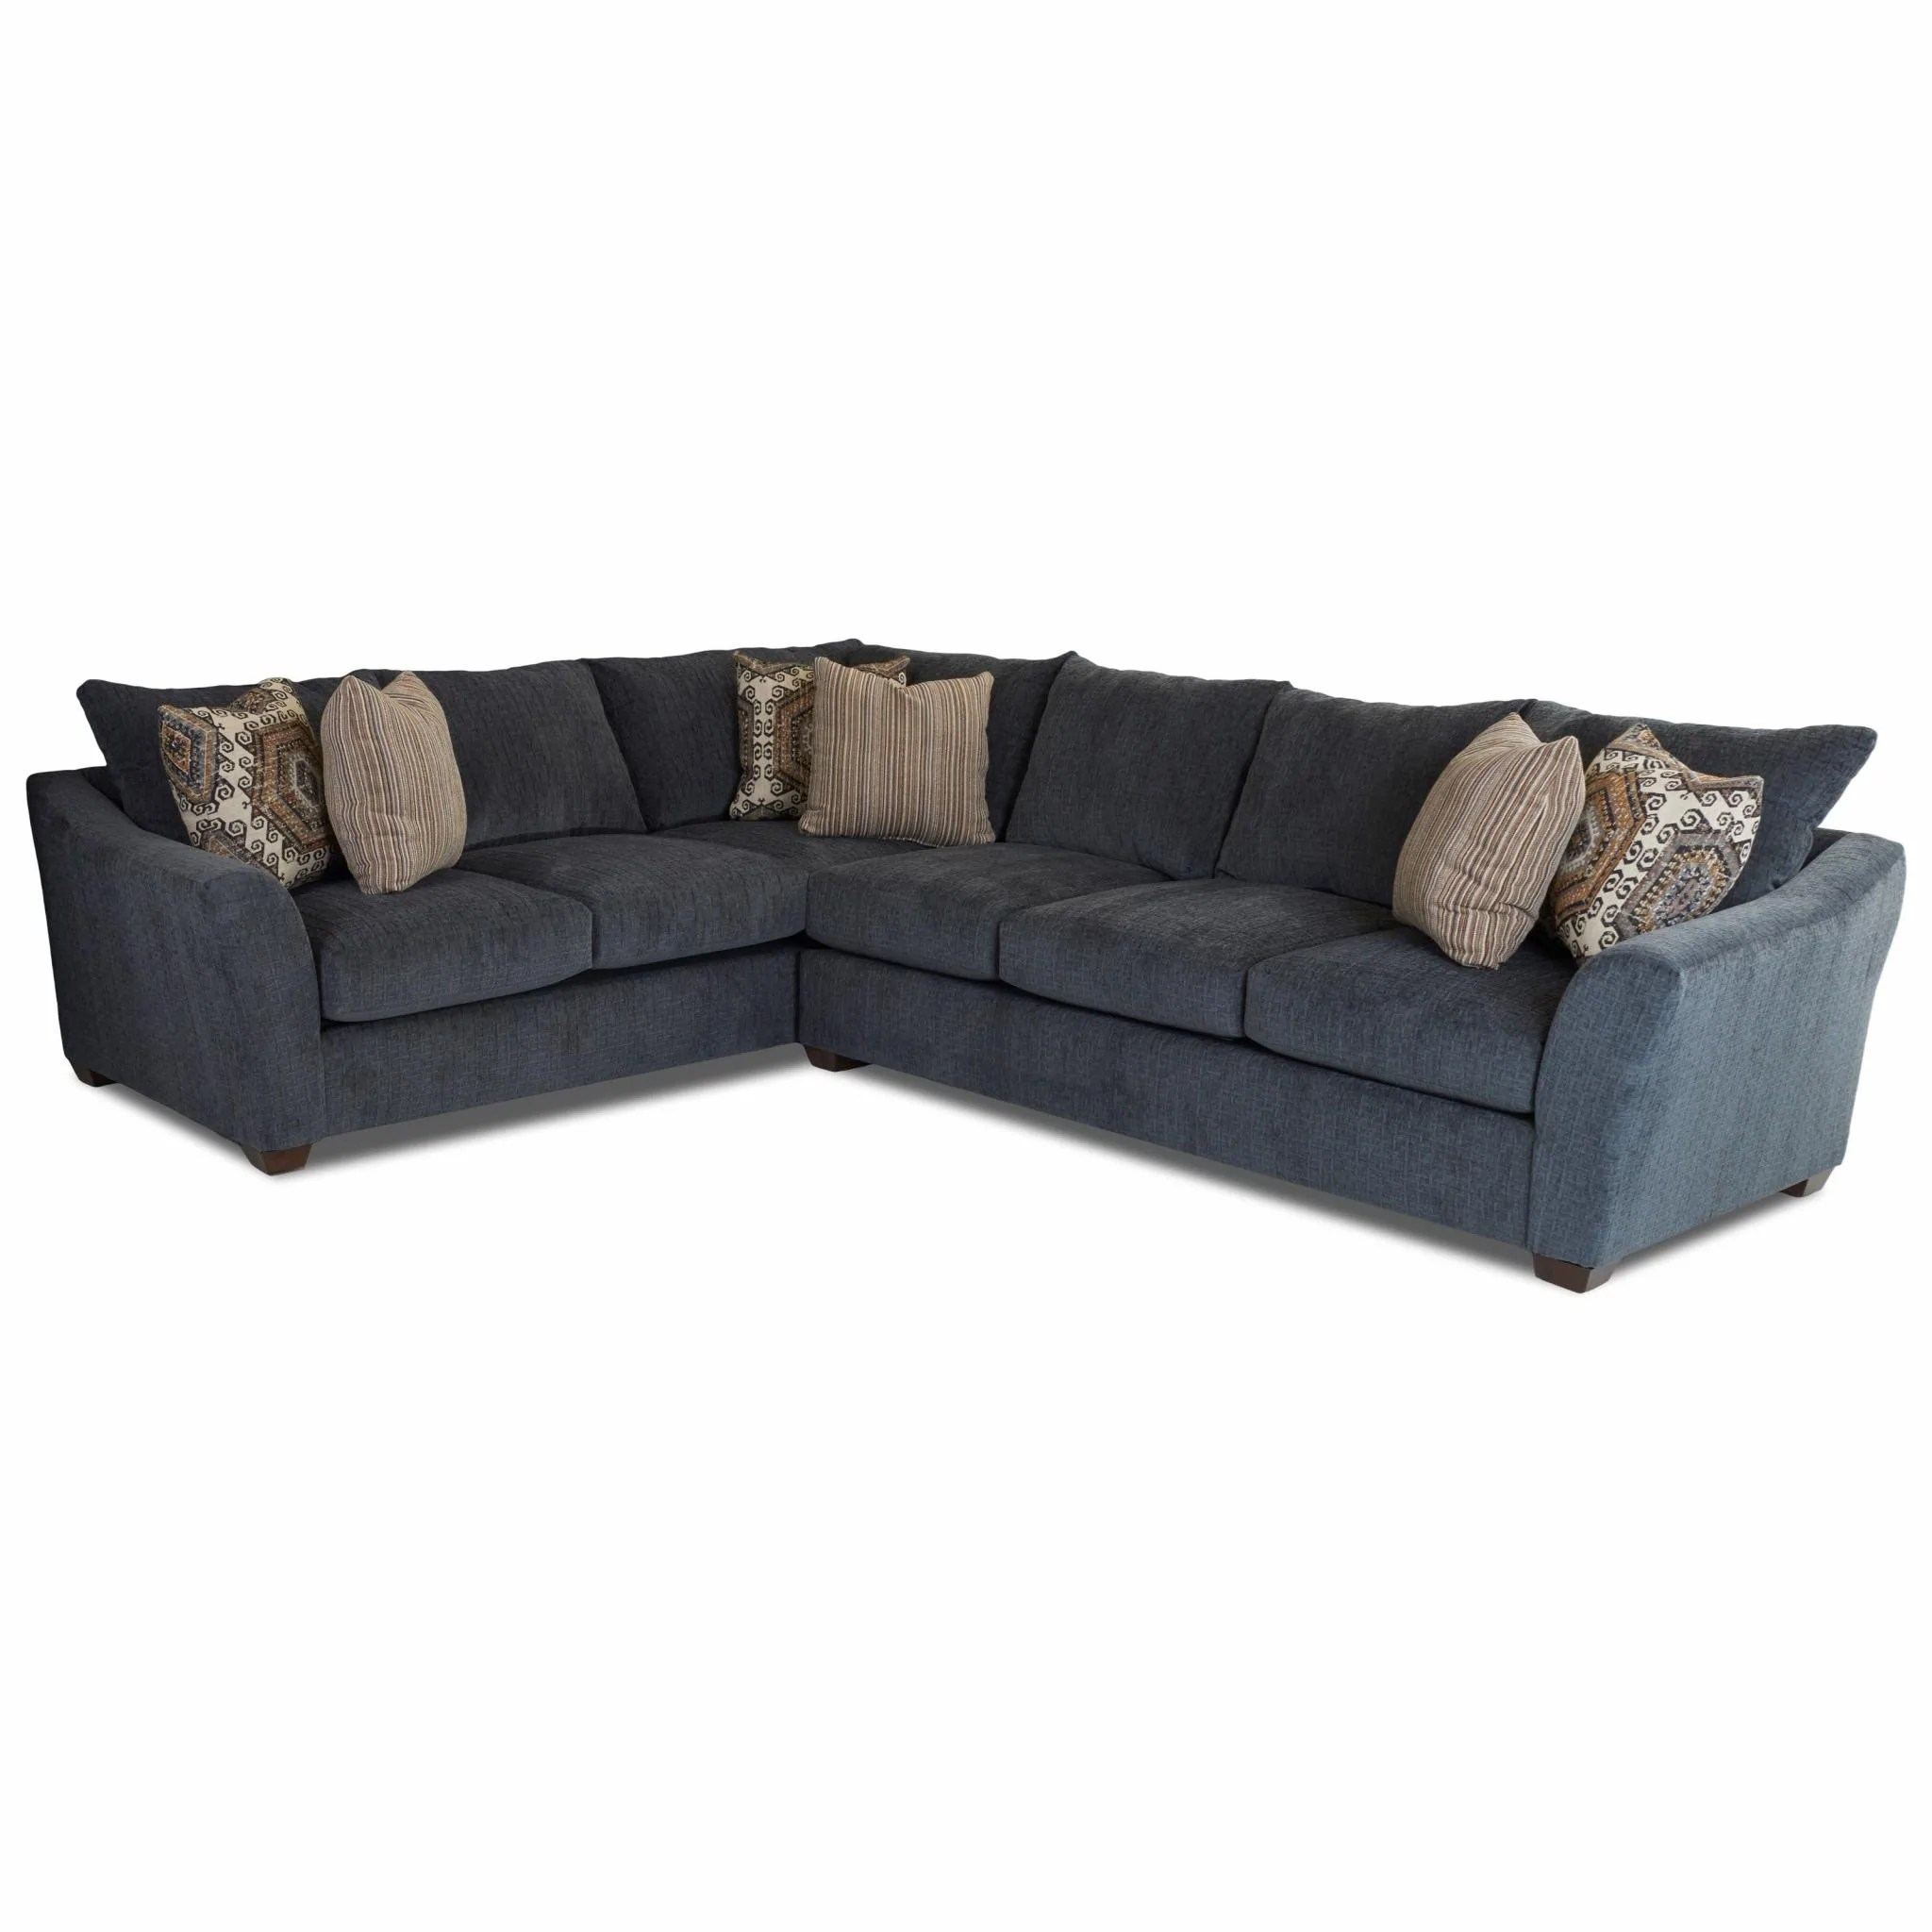 sectional sofa under 2000 white small living room huffman koos furniture